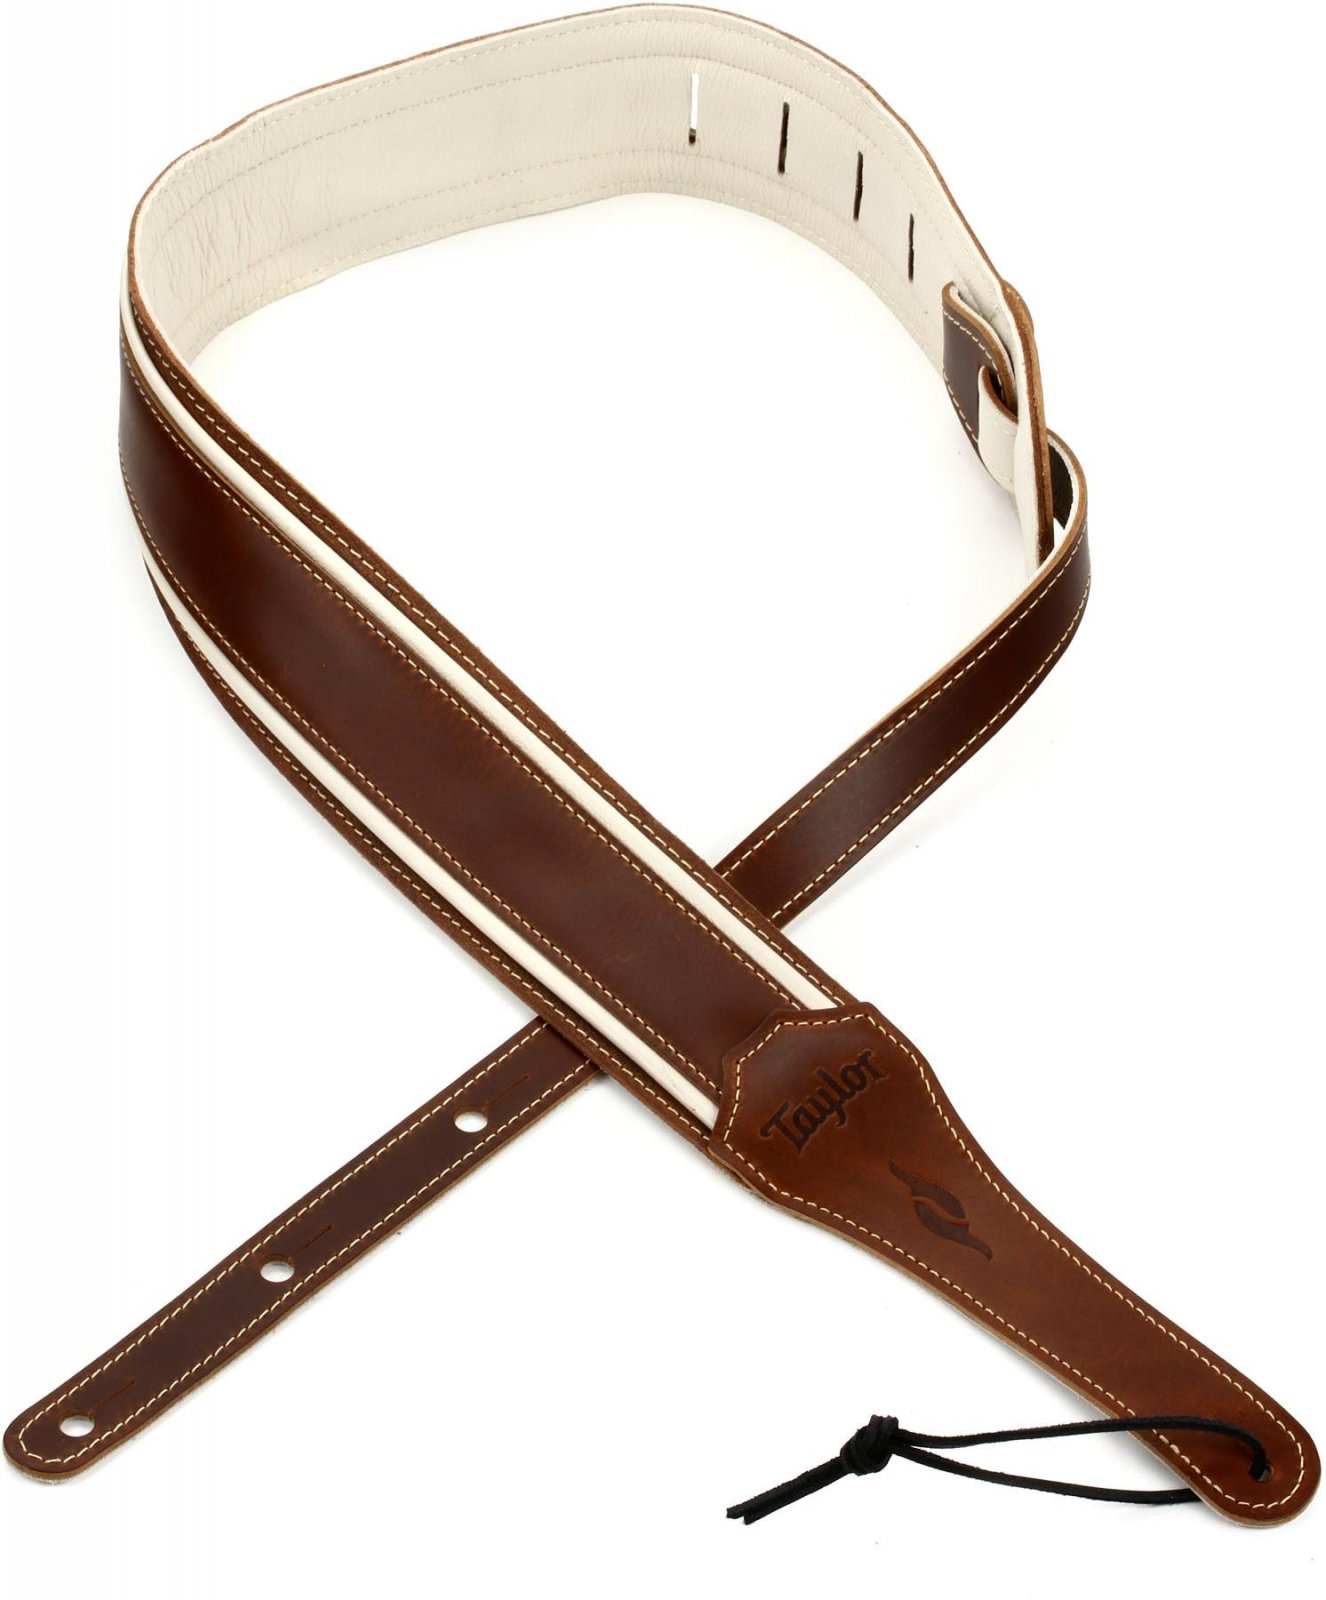 Element Strap , Brown / Cream Leather 2.5